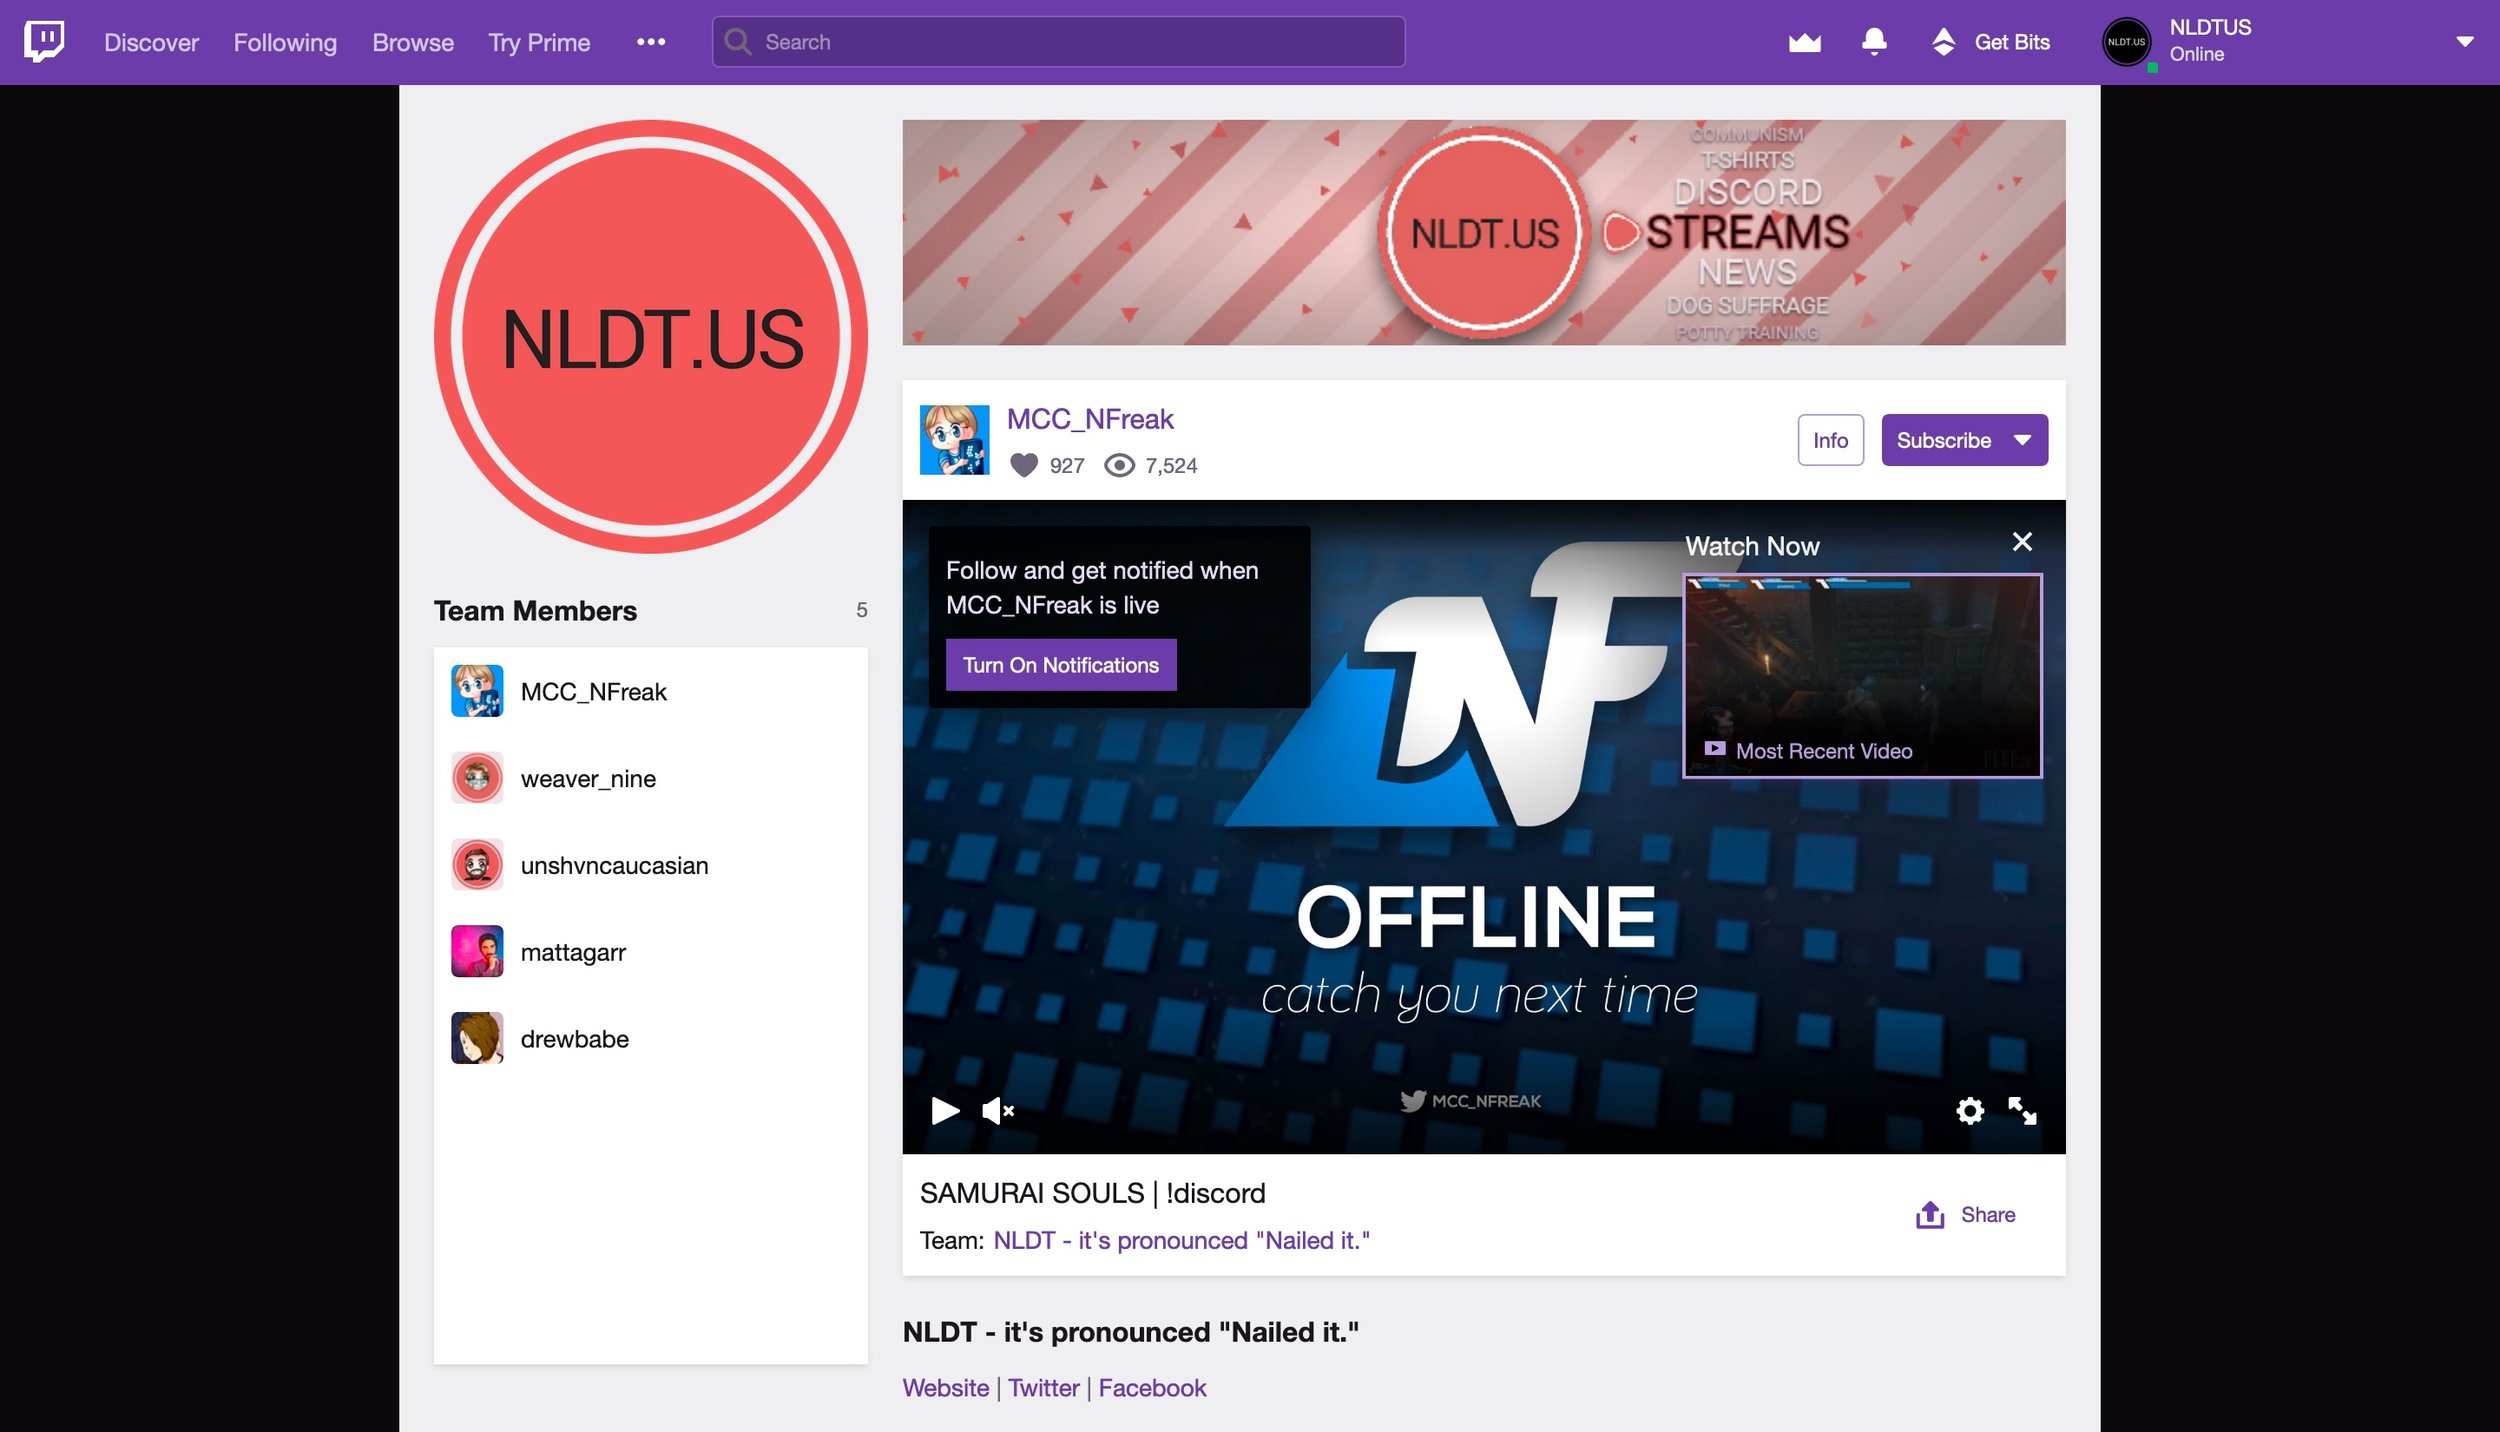 Check out the NLDT twitch team page!